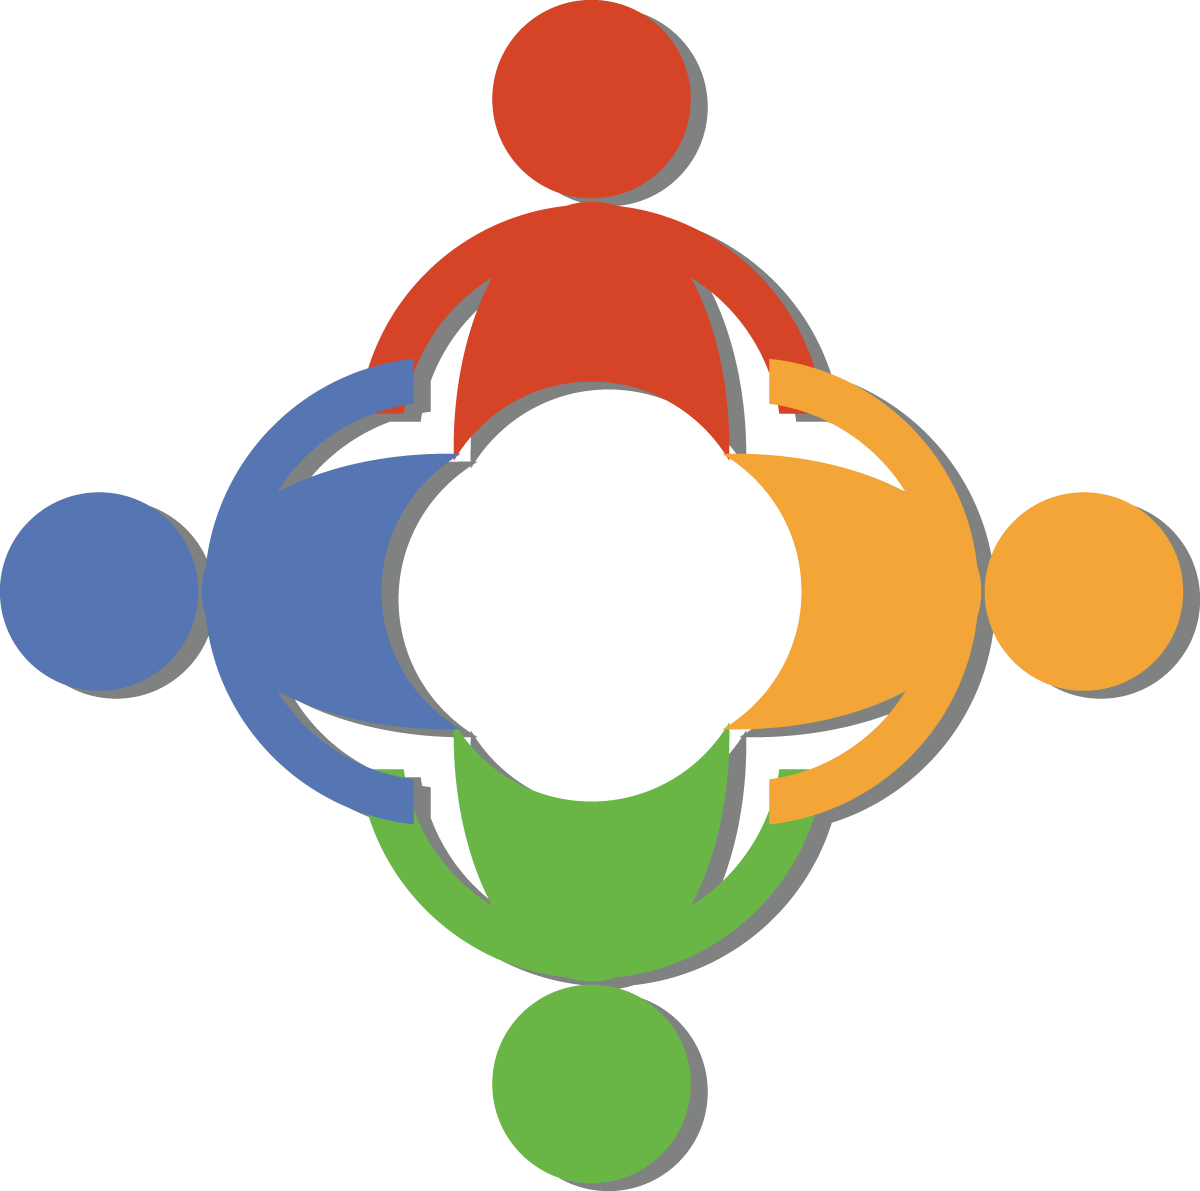 Free teamwork clip art of a circle of diverse people holding hands by